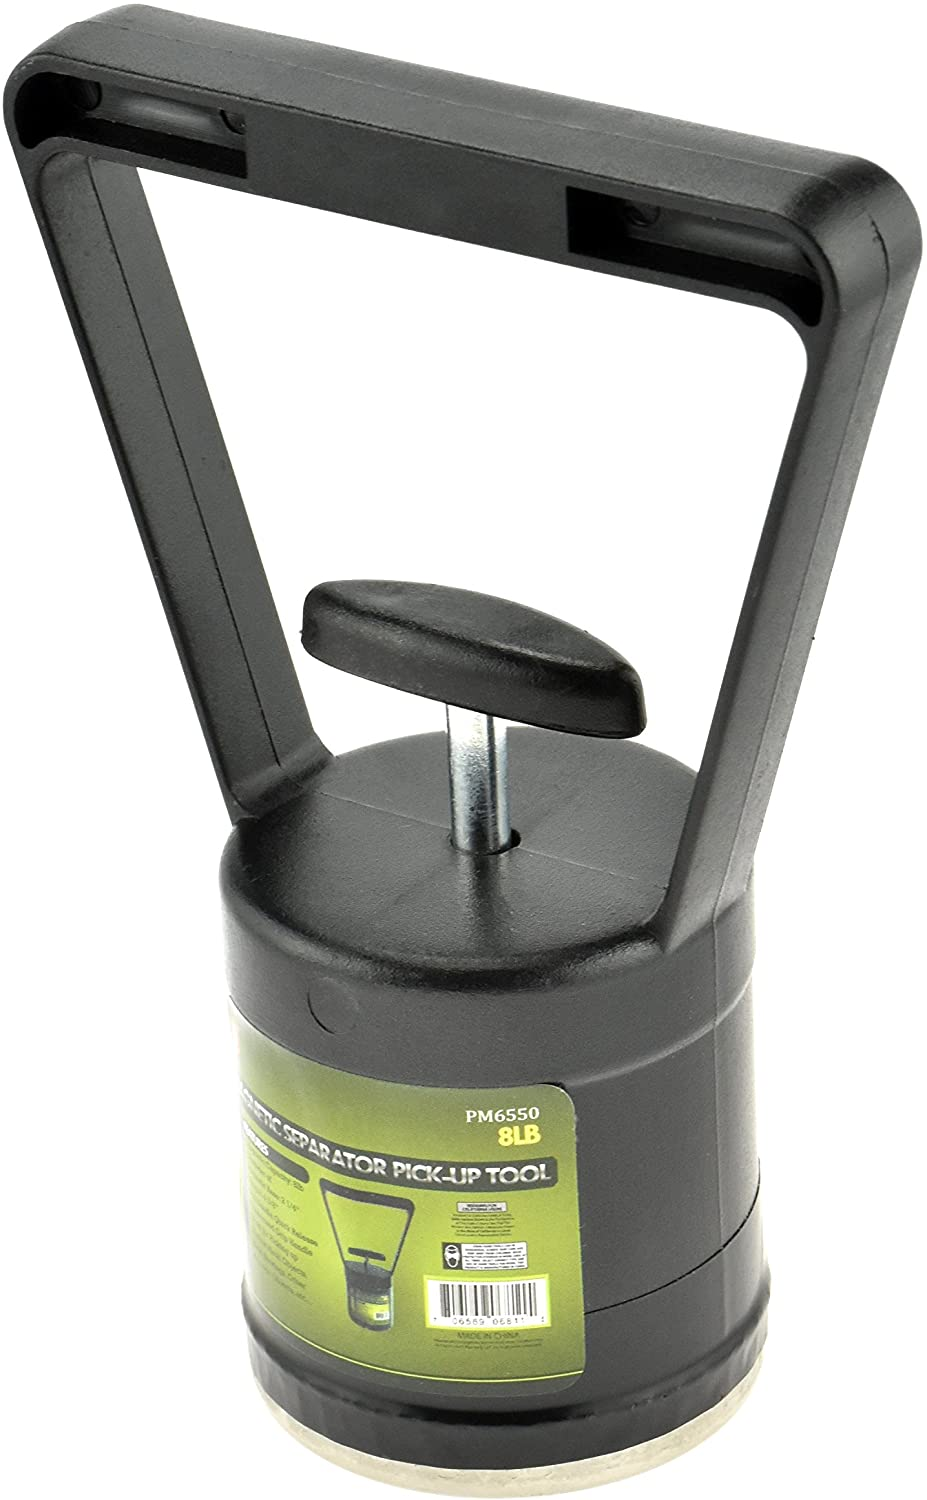 SE Magnetic Separator Pick-Up Tool with Quick Release